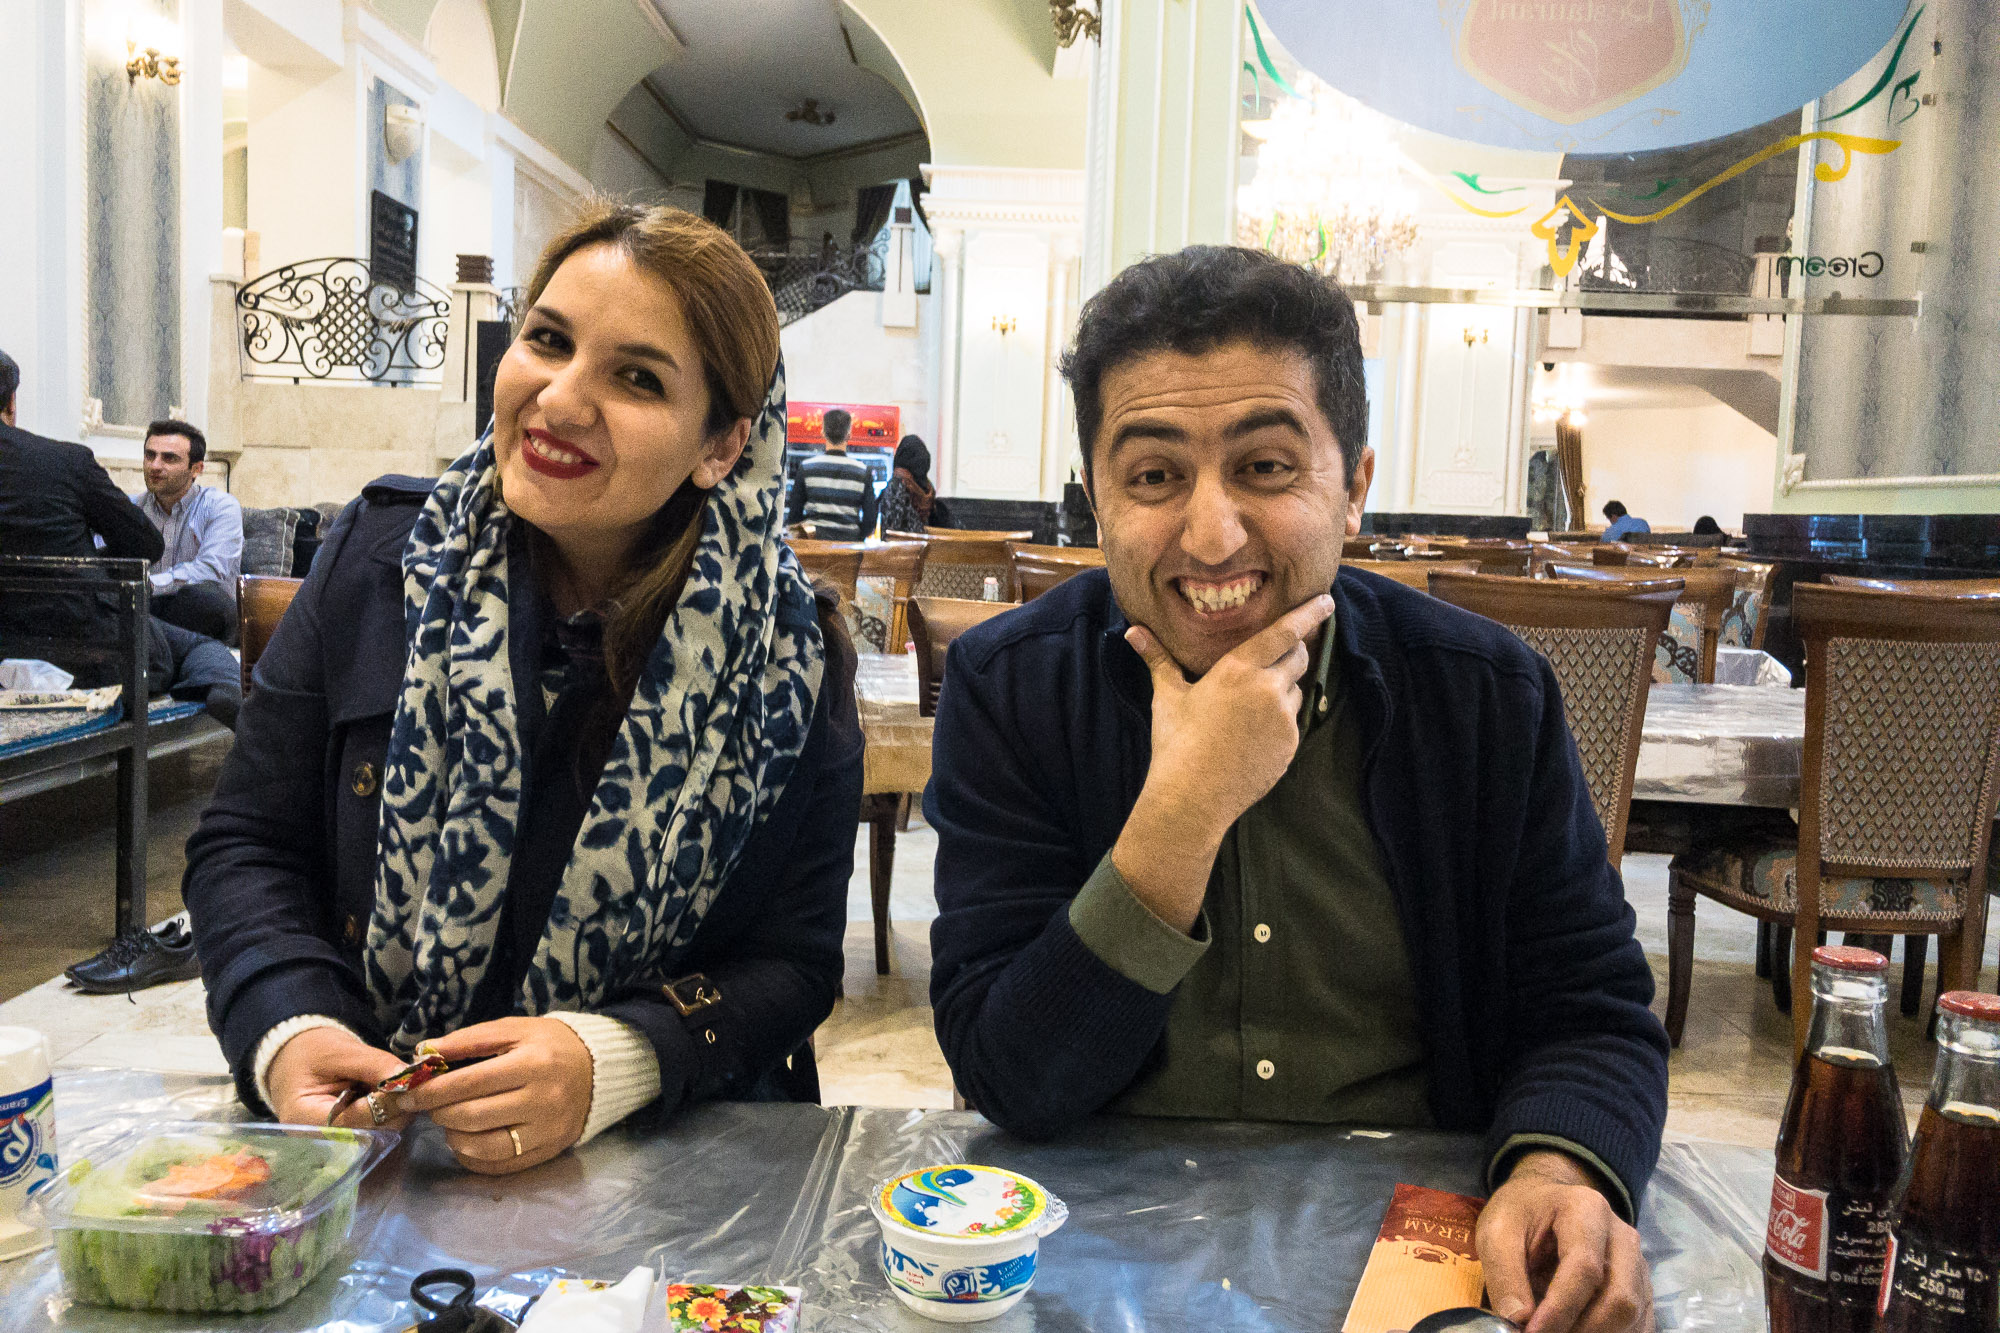 Bahman and his wife